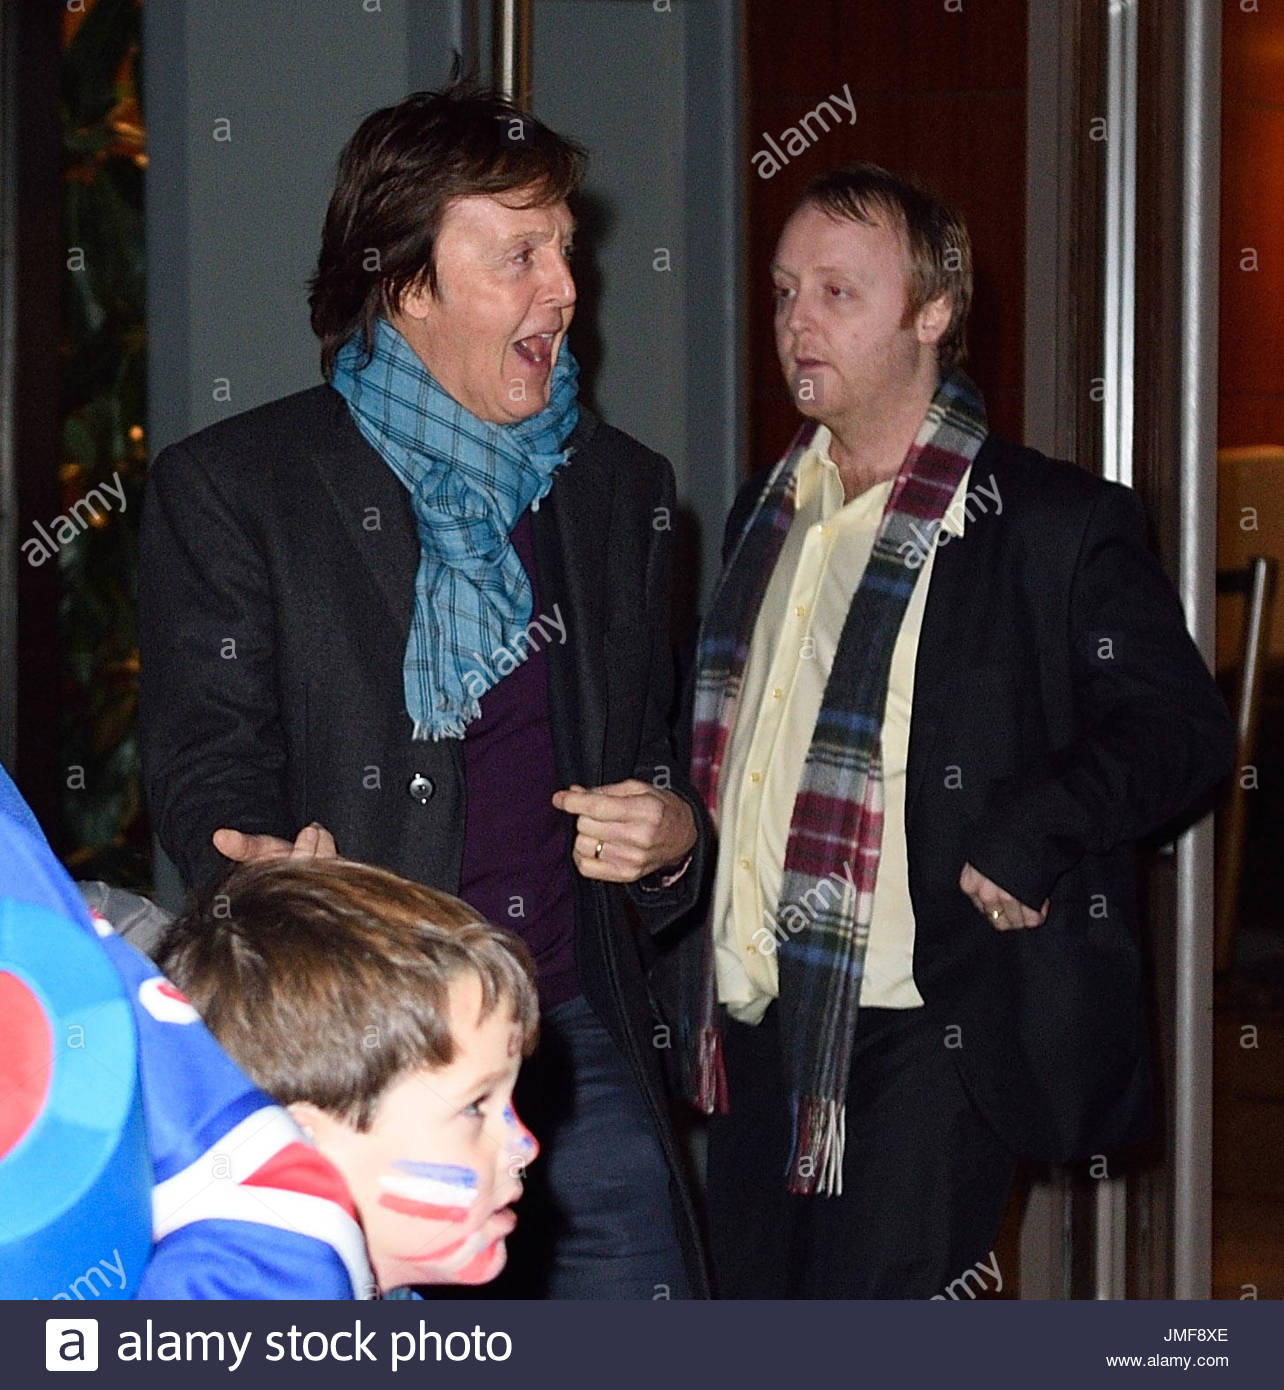 Paul McCartney With Son James And Daughter Mary Leave The Rangers Game In NYC